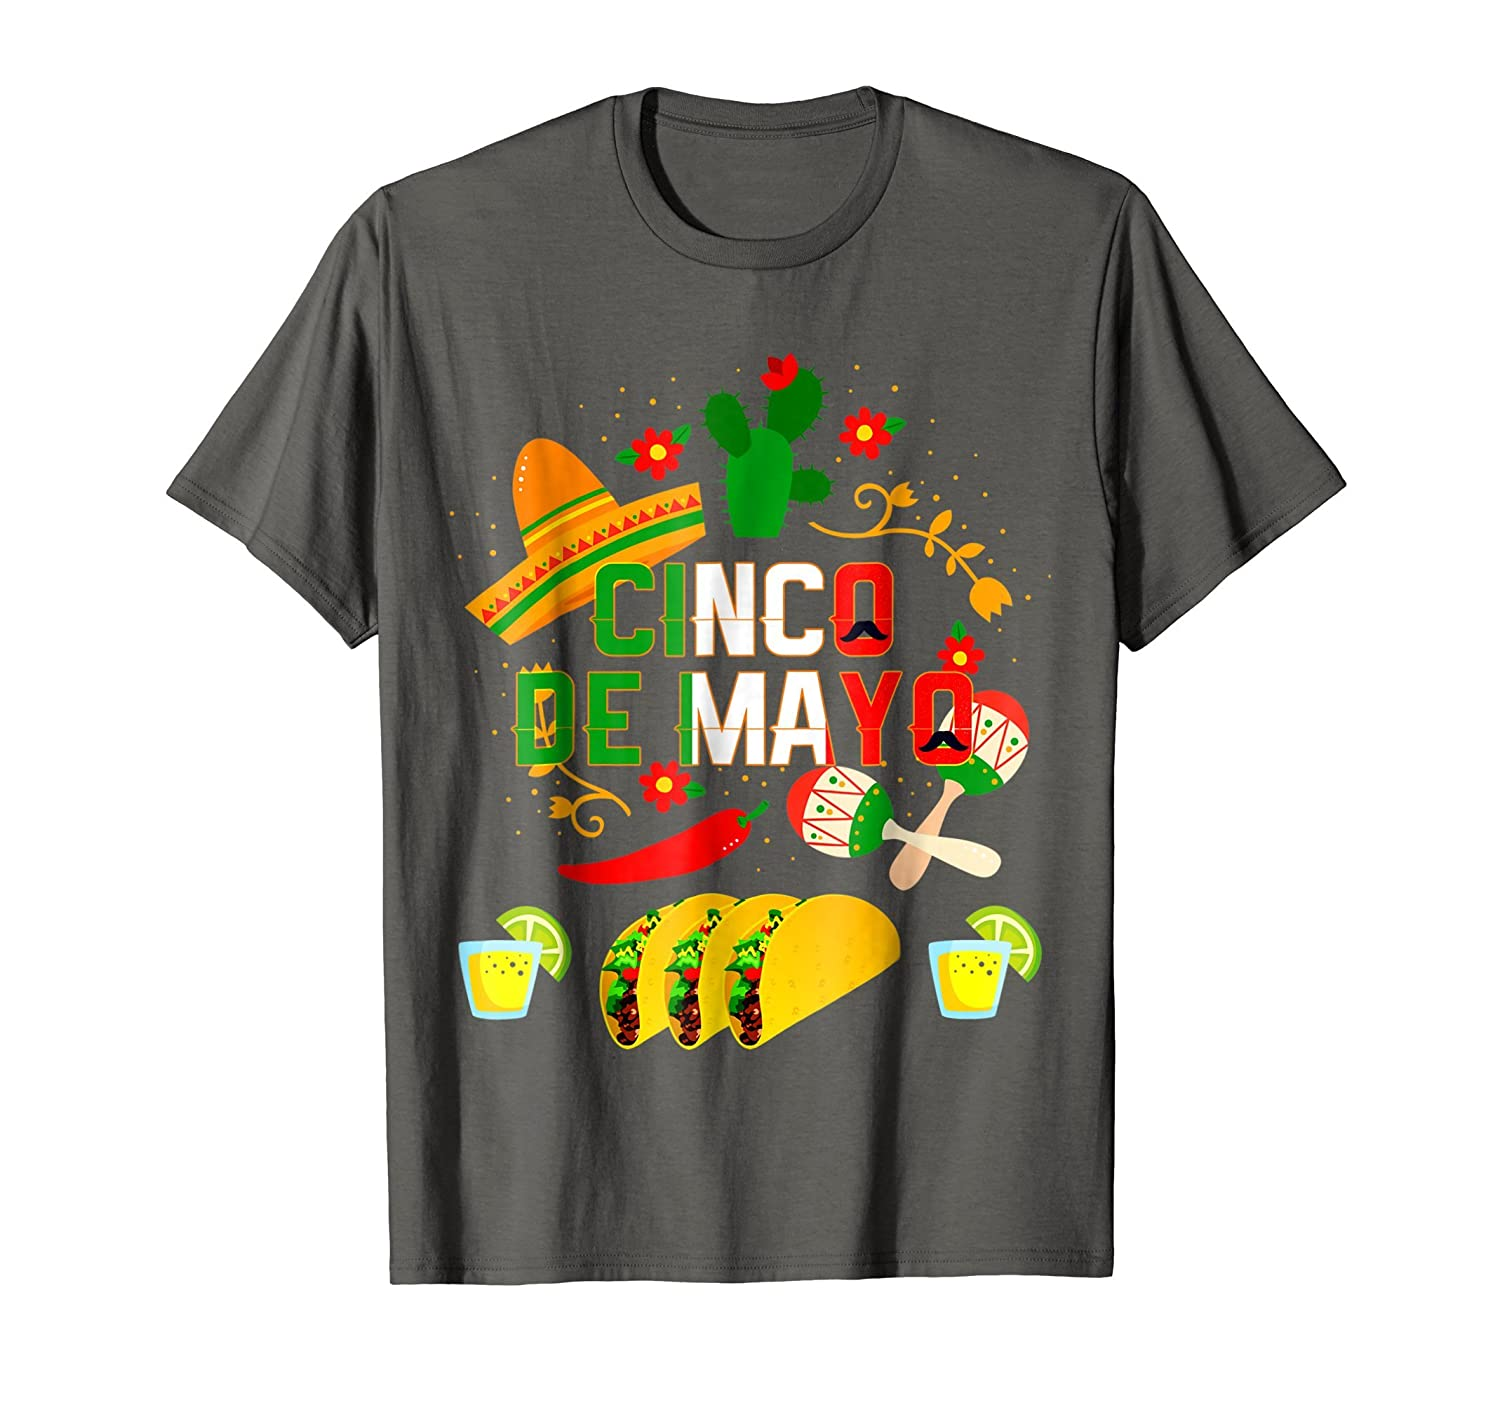 e94a4cd4 Imported Machine wash cold with like colors, dry low heat. An Awesome Cinco  de Mayo T-Shirt for your 5th of May Mexican ...